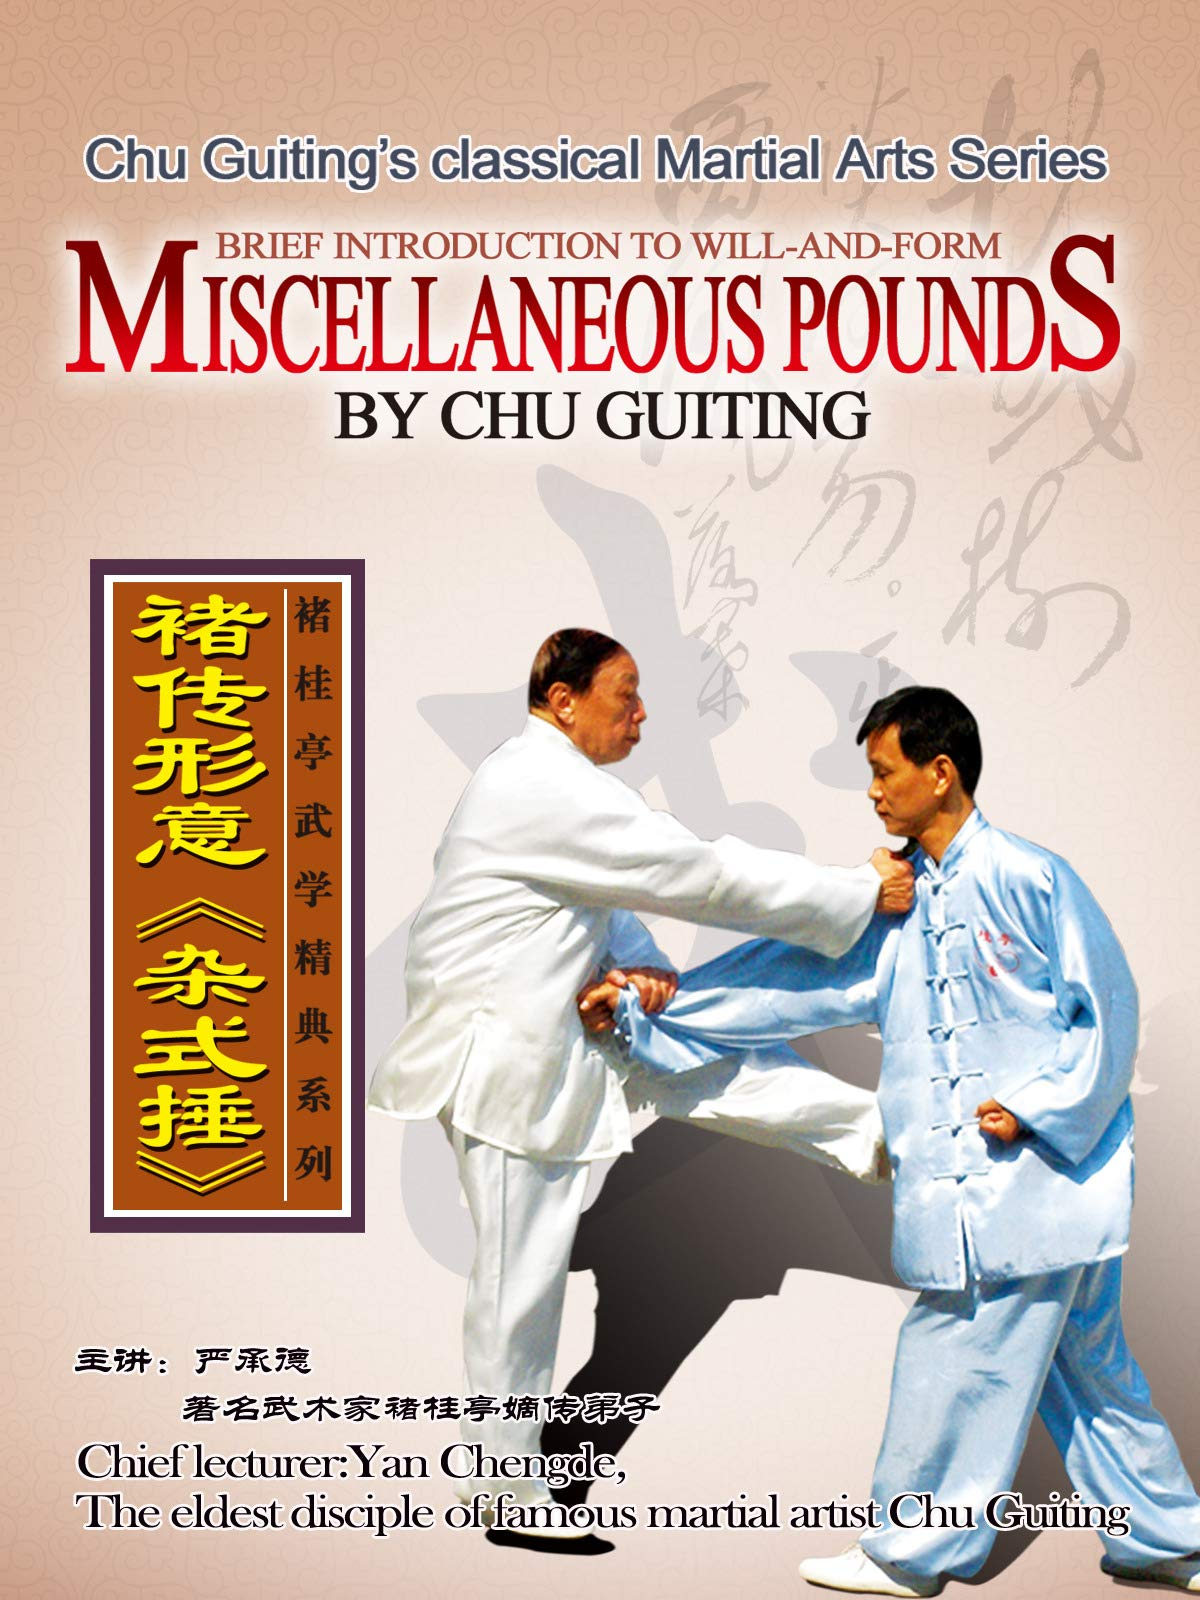 Chu Guiting's classical Martial Arts Series-Brief Introduction to Will-and-Form Miscellaneous Pounds by Chu Guiting